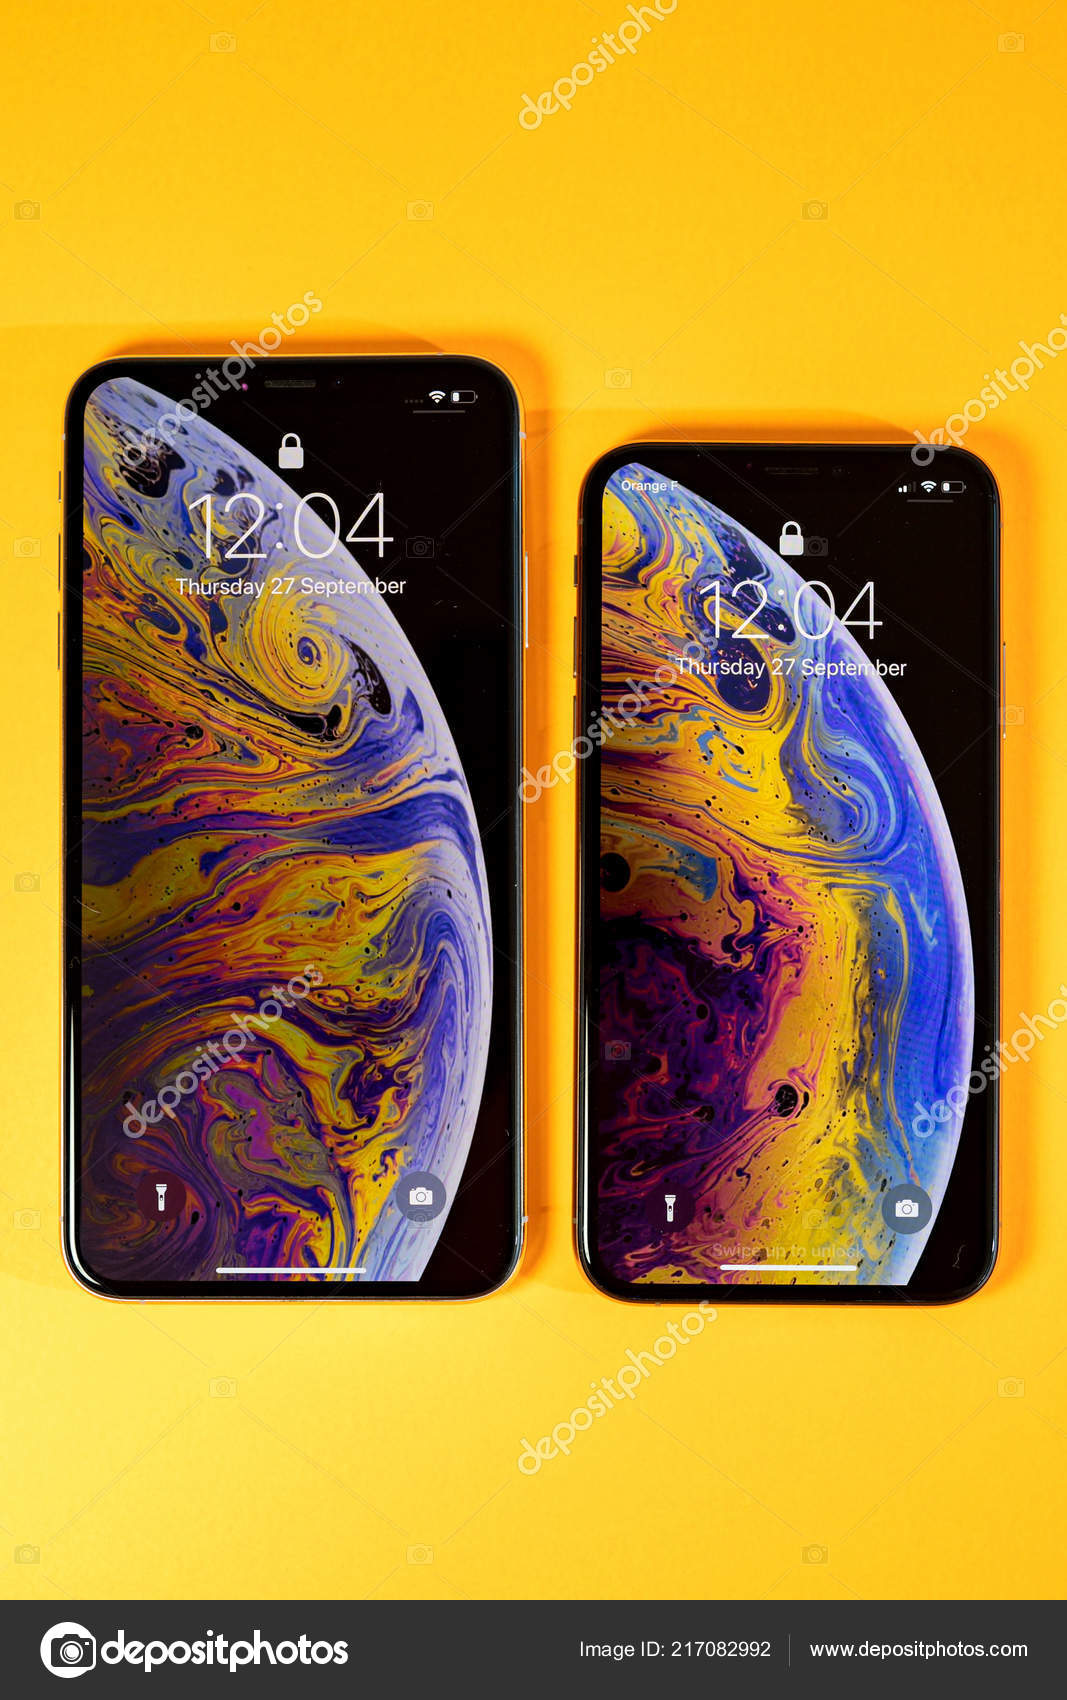 Background Cool Backgrounds Iphone Apple Iphone Xs Max